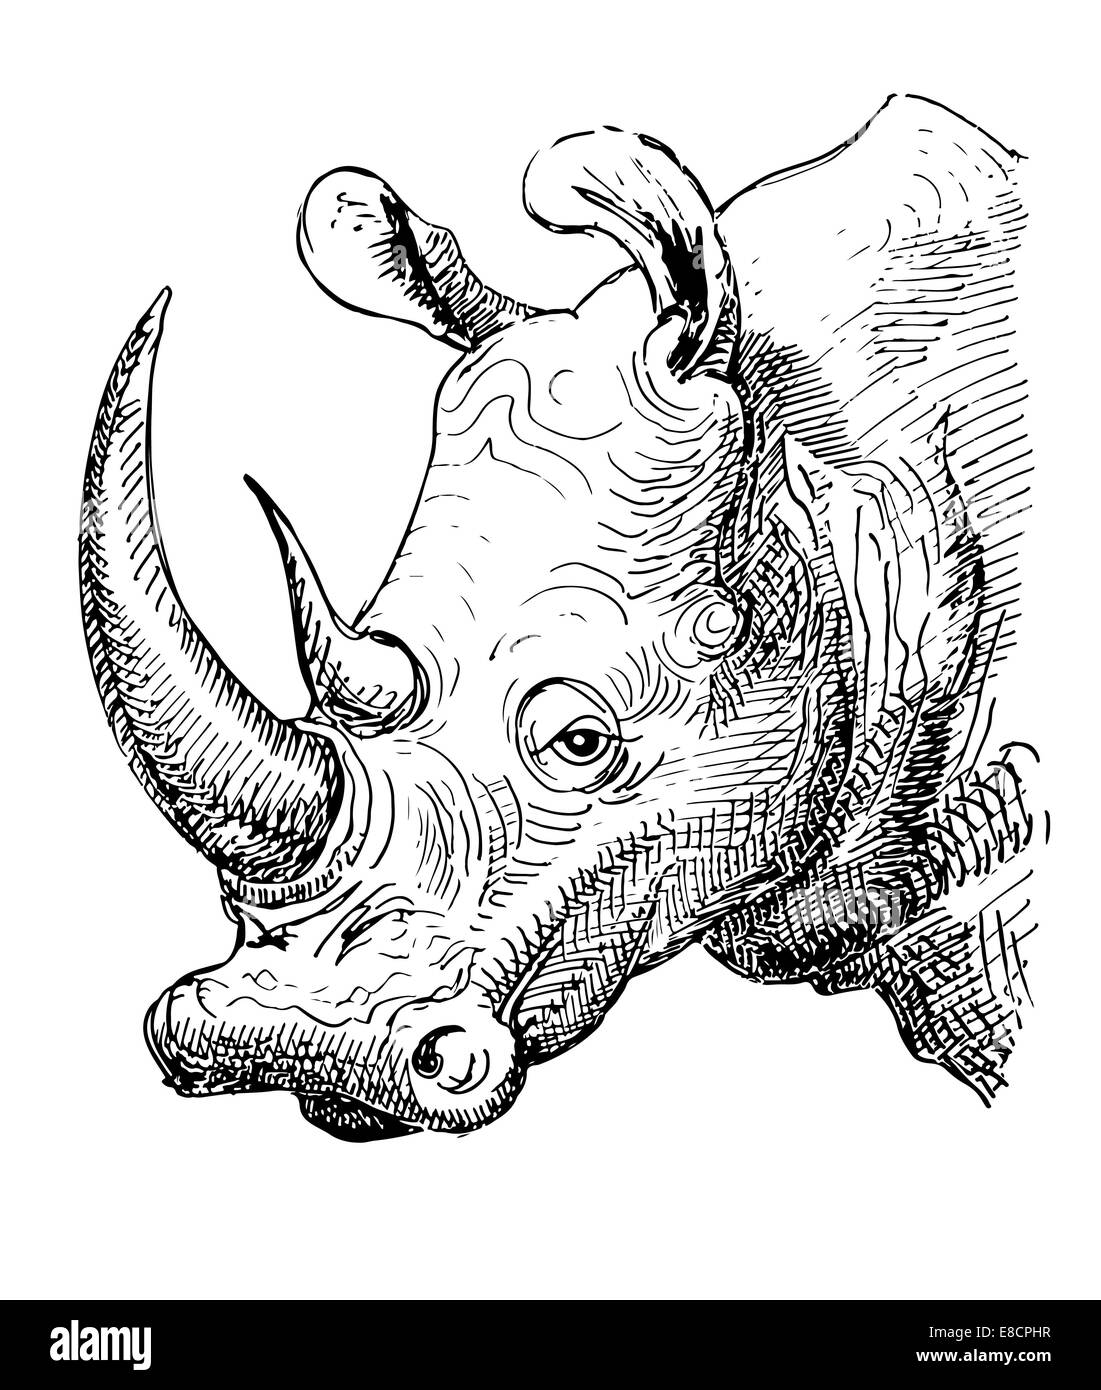 Uncategorized Rhinoceros Drawing artwork rhinoceros sketch black and white drawing stock photo drawing